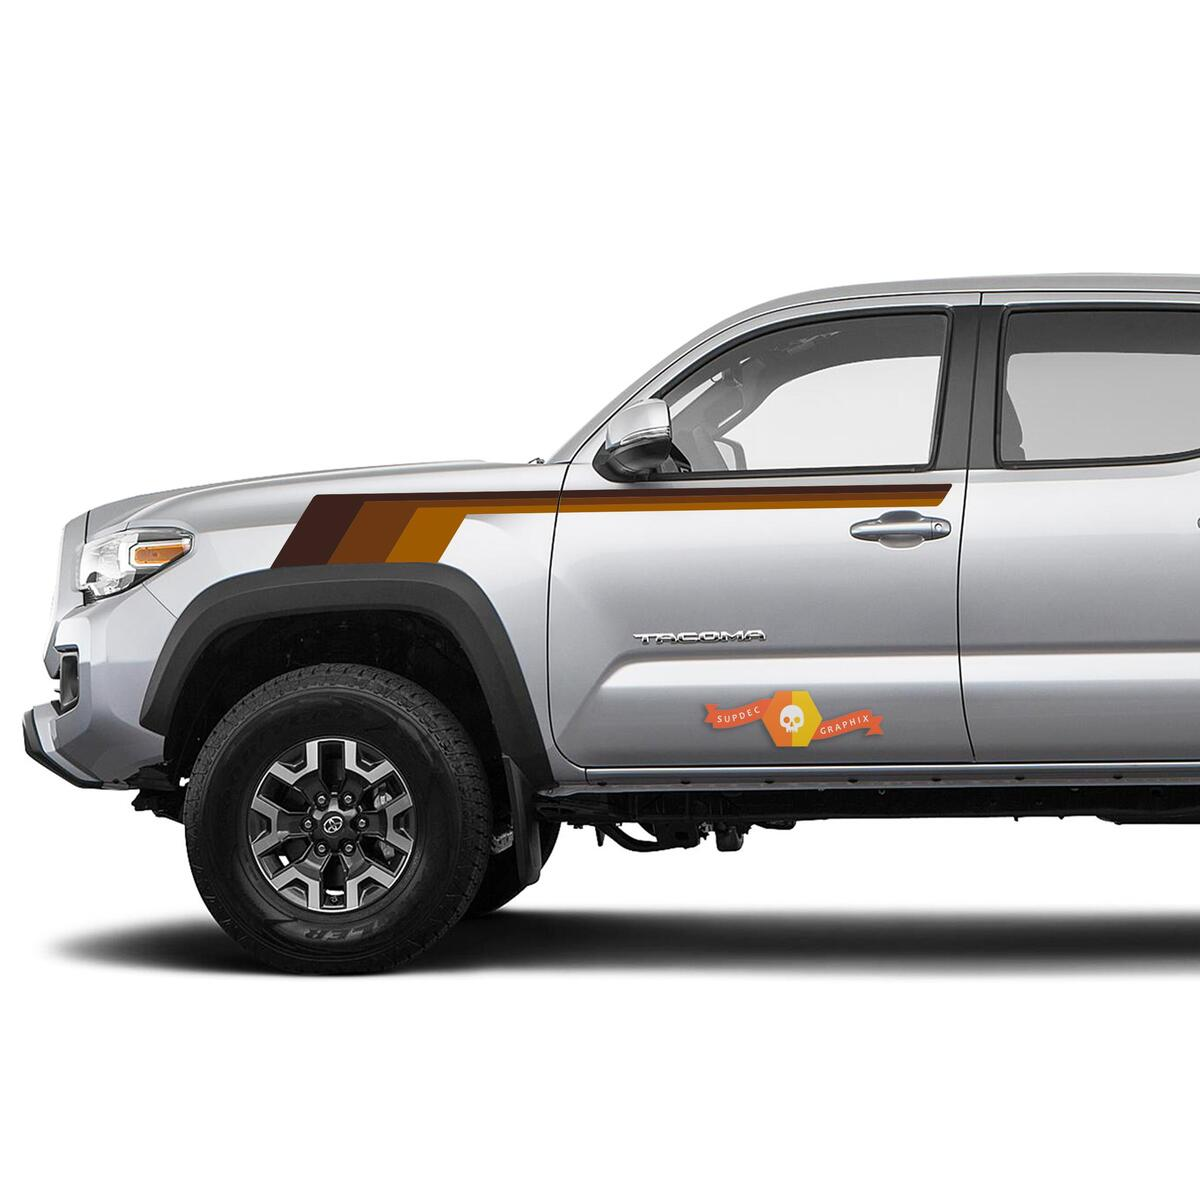 Toyota Trd Old Style Tacoma Vintage Style Brown Shadows Graphics Side Decal Stripe Decal